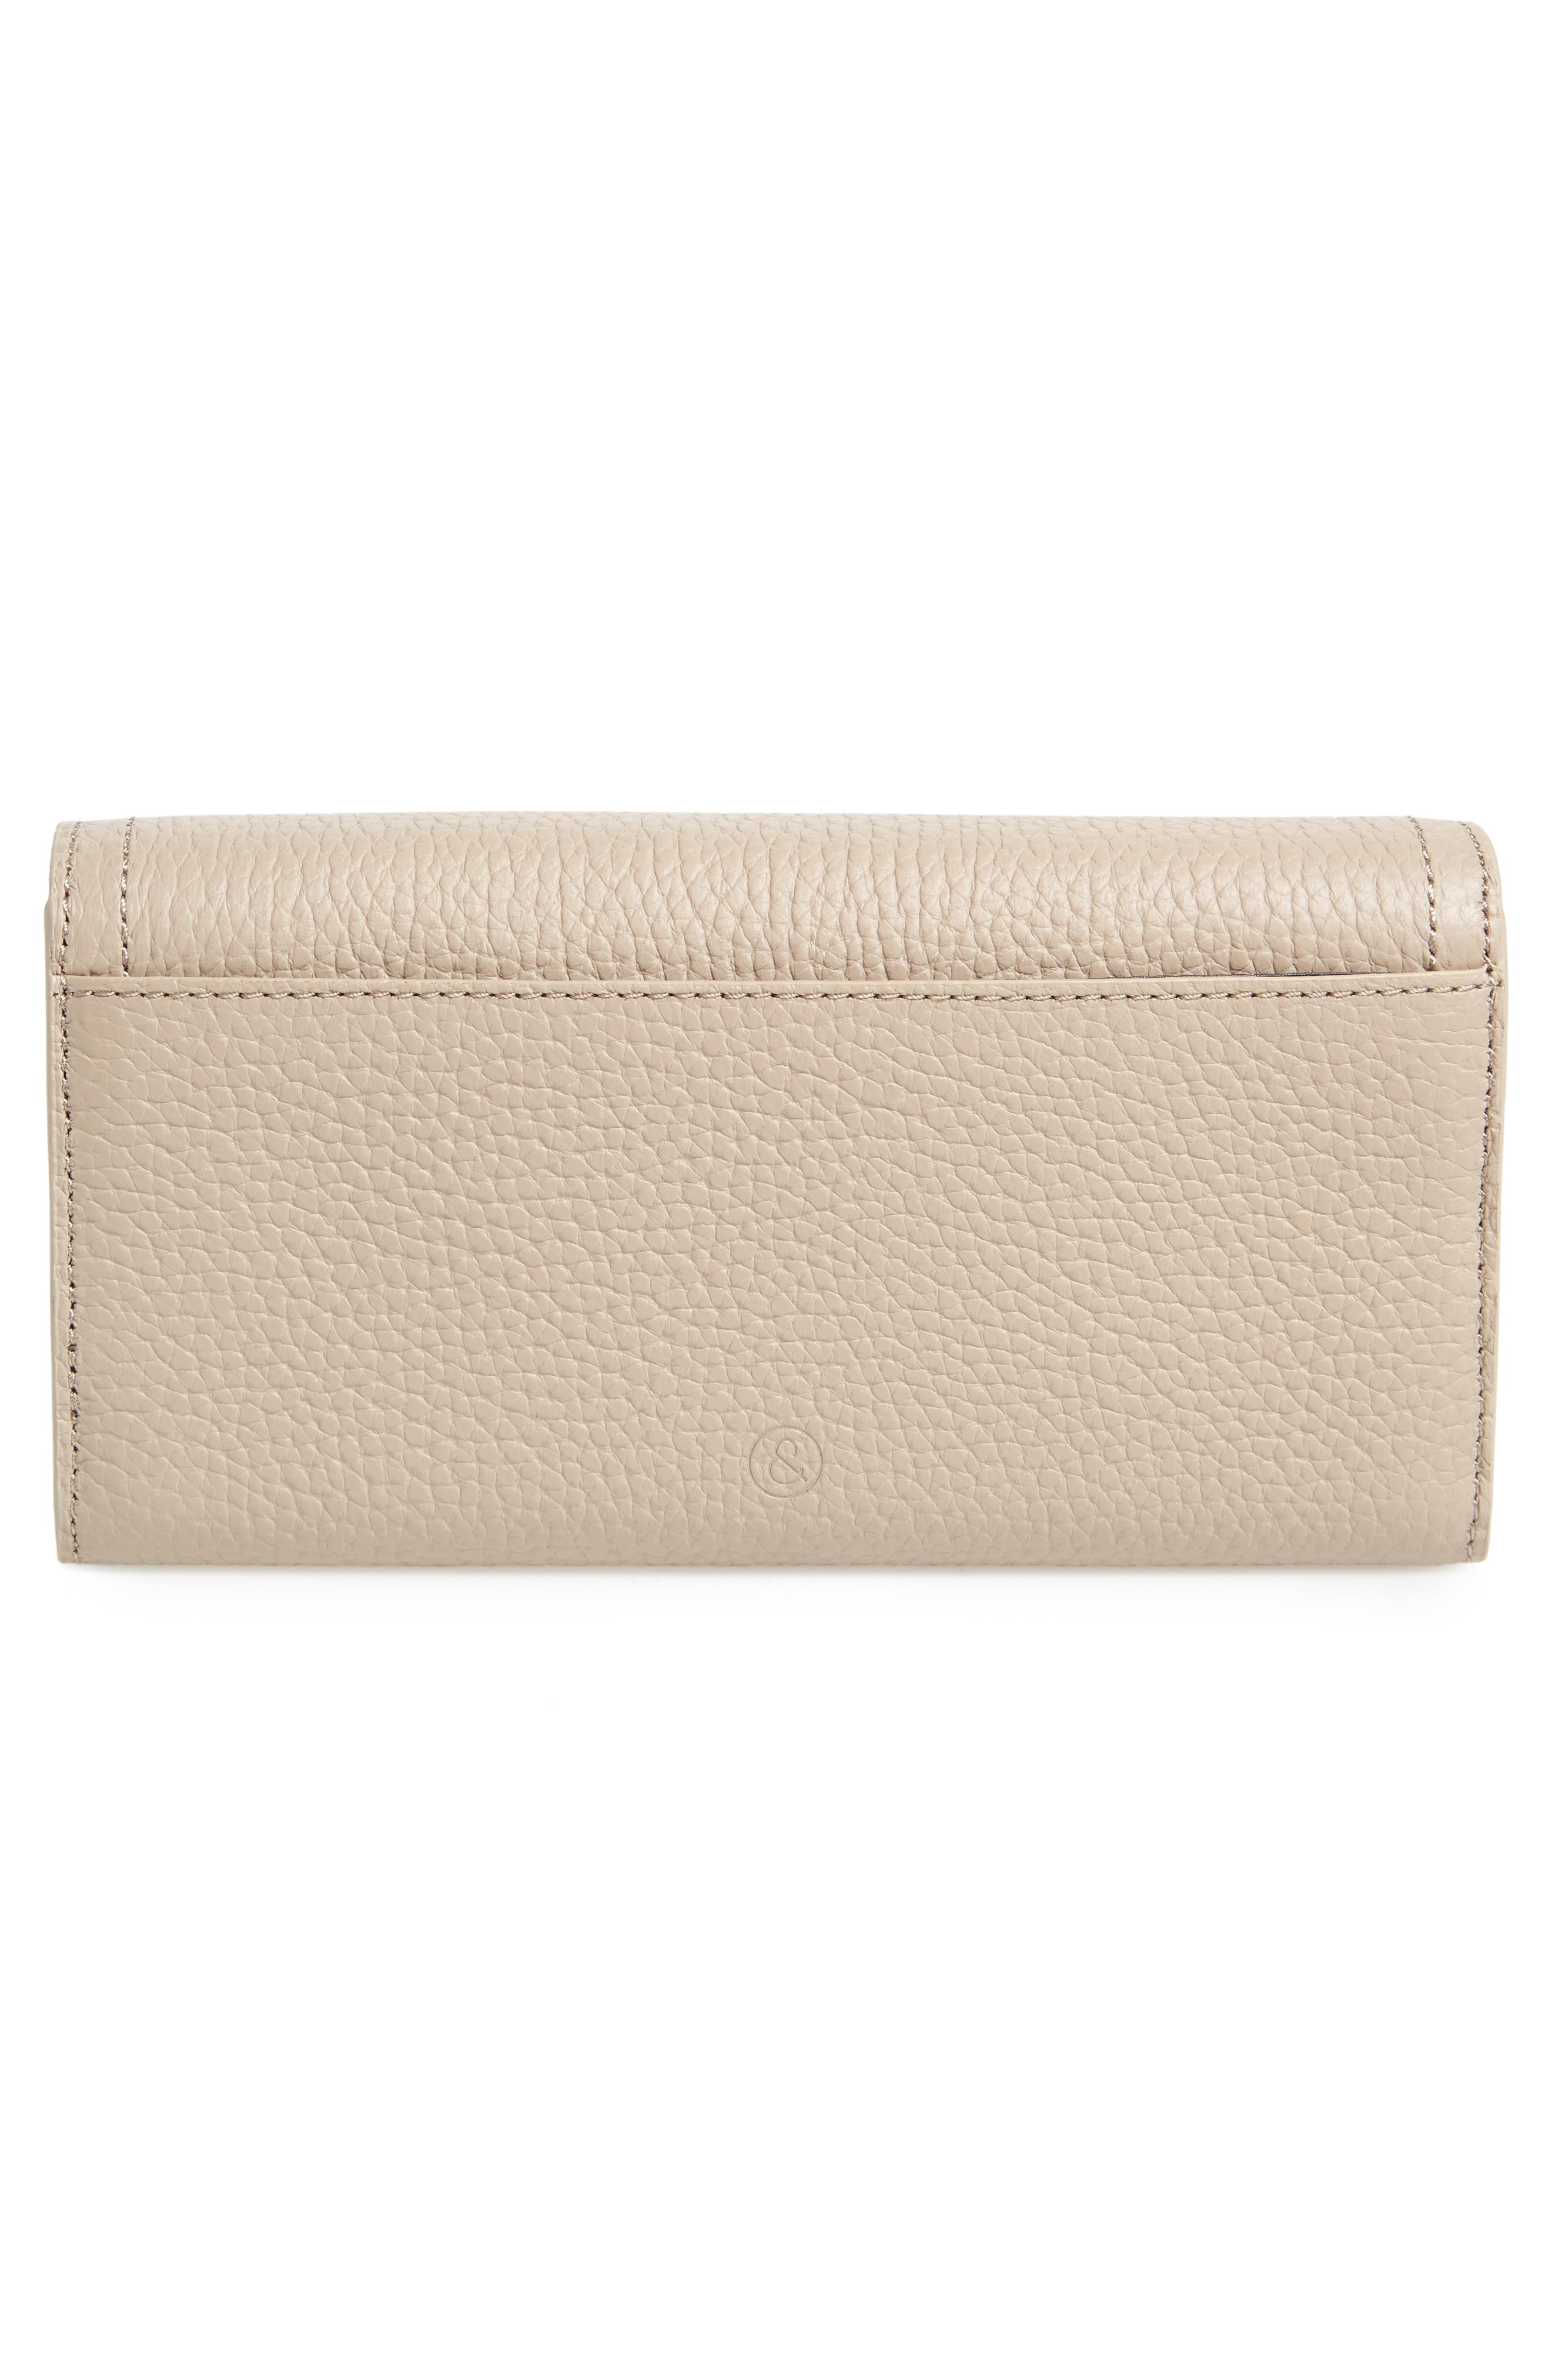 Leather Continental Wallet,                             Alternate thumbnail 4, color,                             Beige Morn